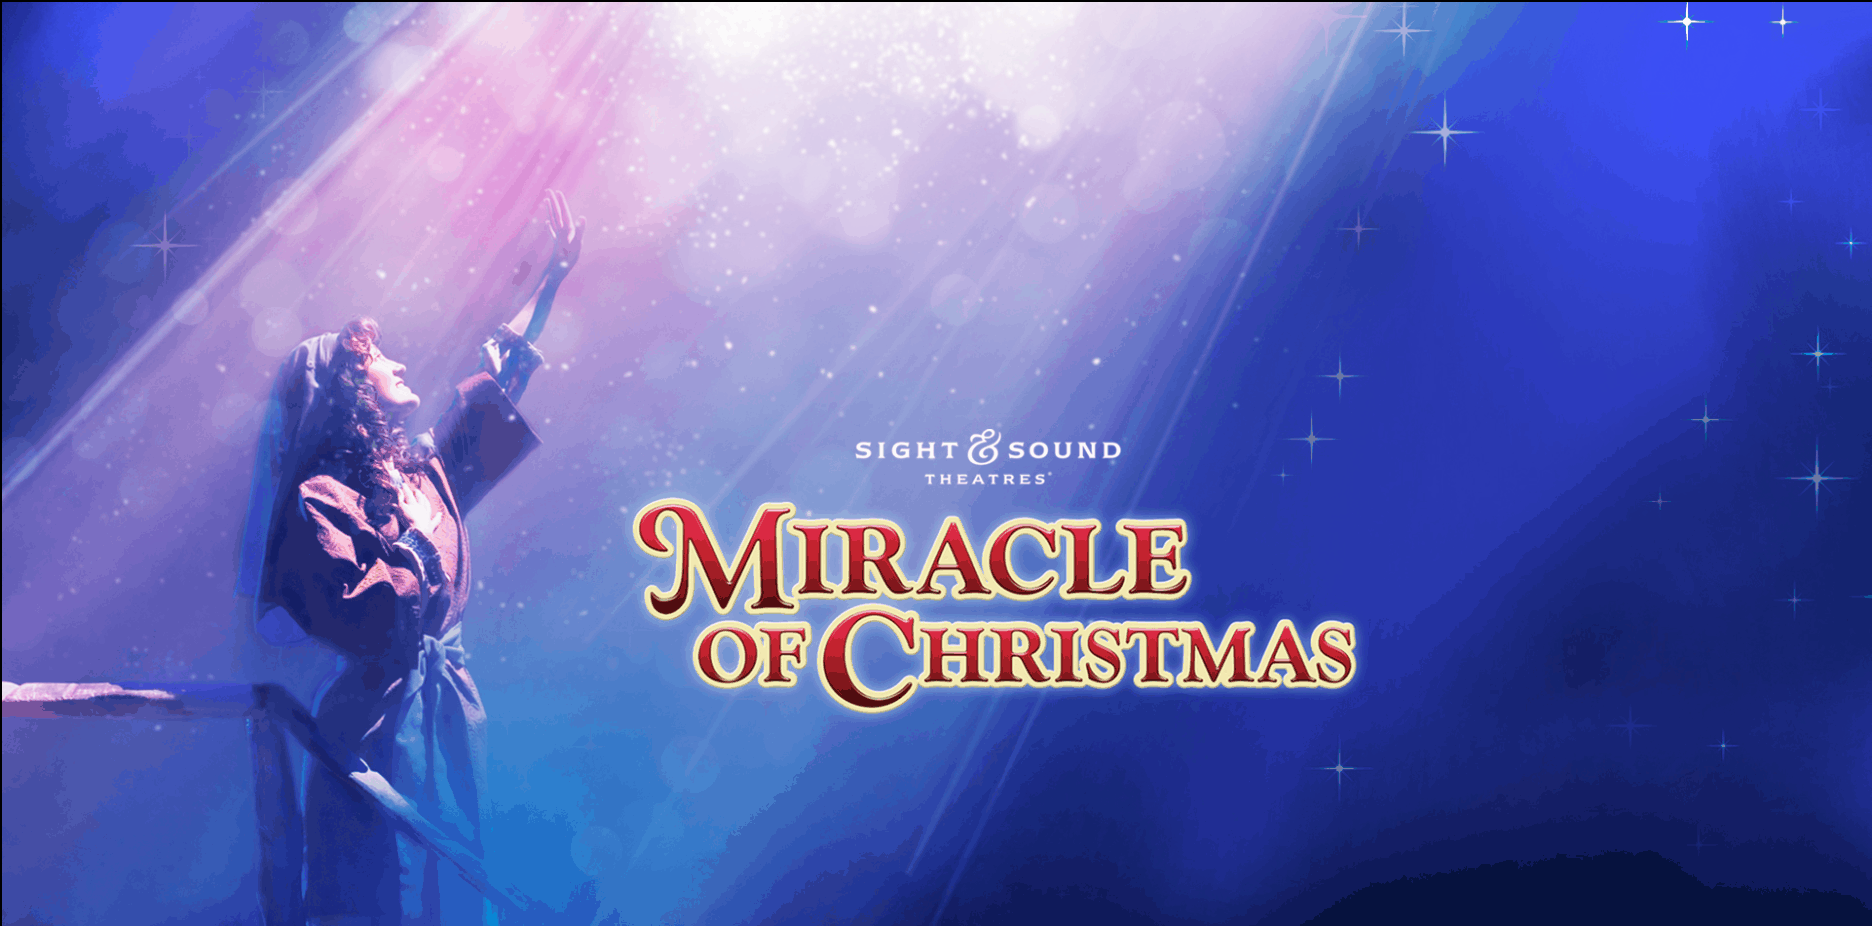 Sight And Sound Miracle Of Christmas.Sights And Sound Theatre Miracle Of Christmas Lodestar Tours